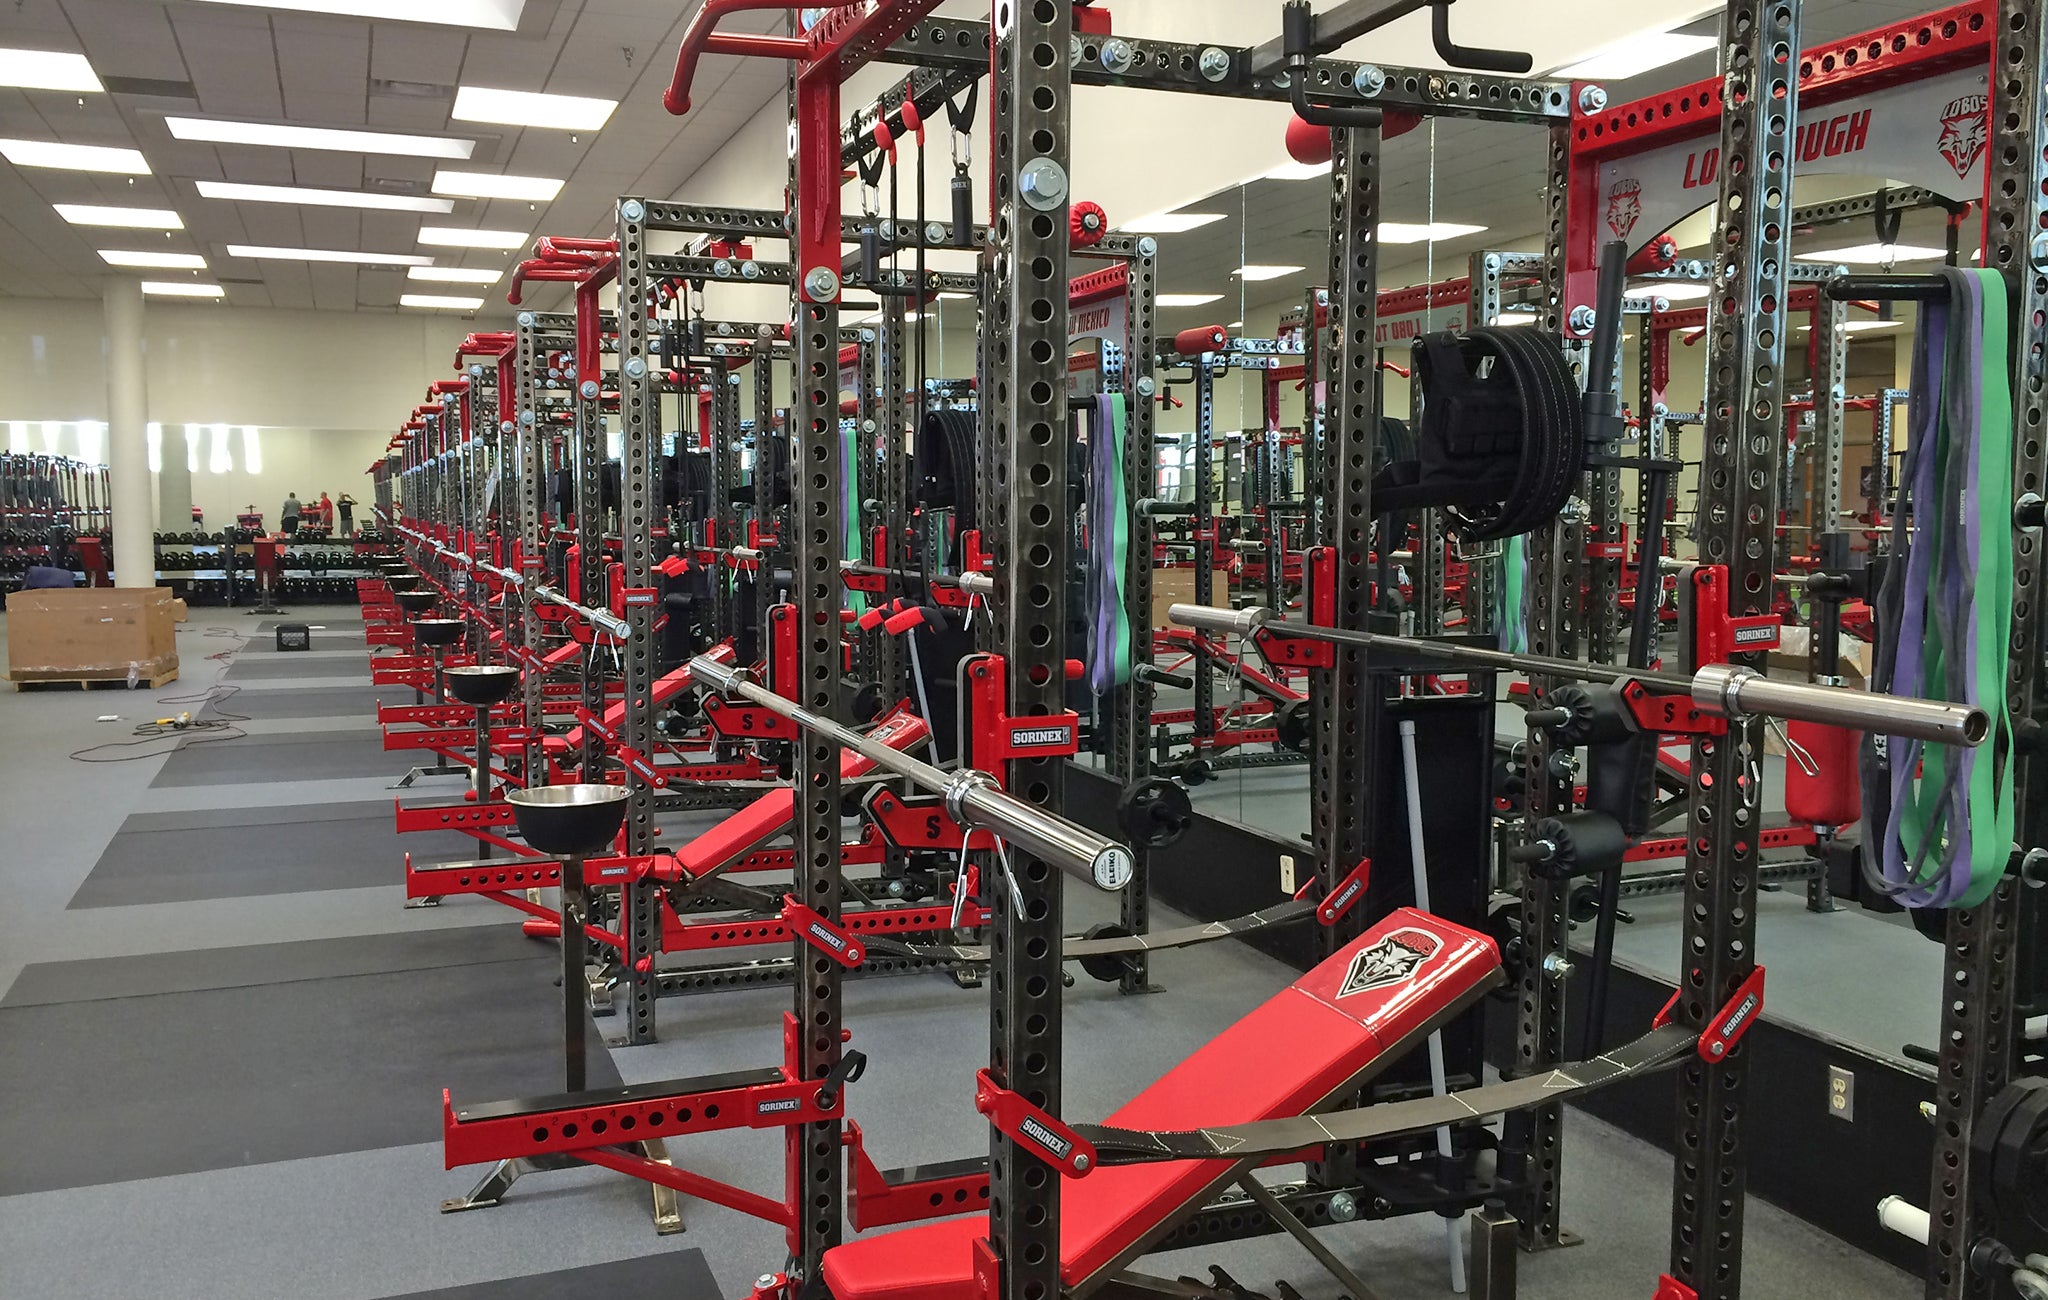 University of New Mexico strength and conditioning